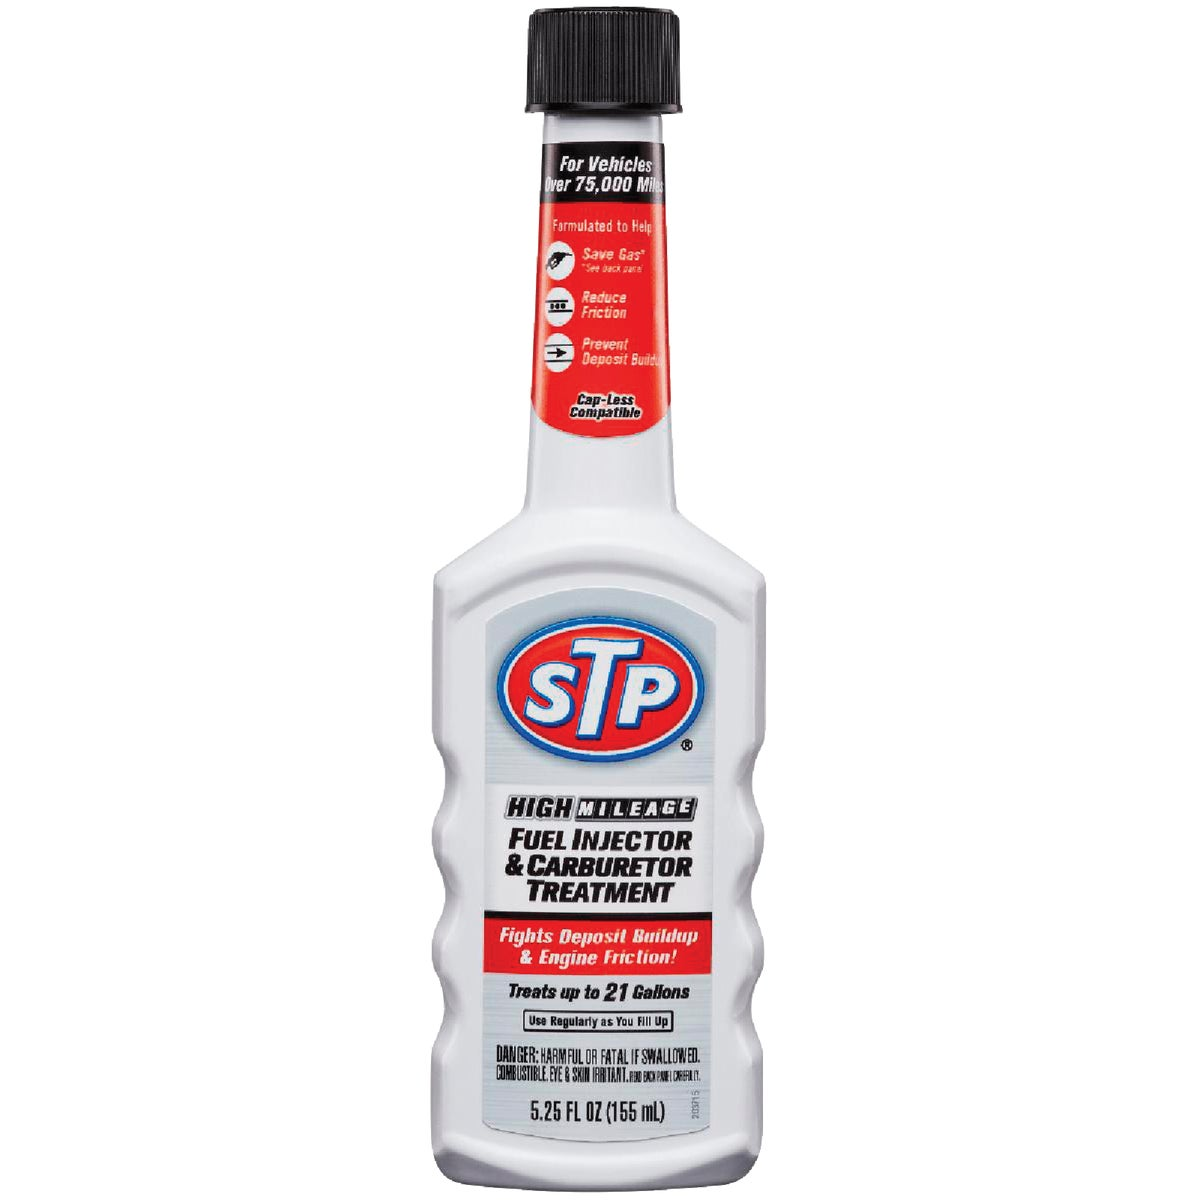 5.25STP CARB/INJ CLEANER - 78571 by Armored Autogroup